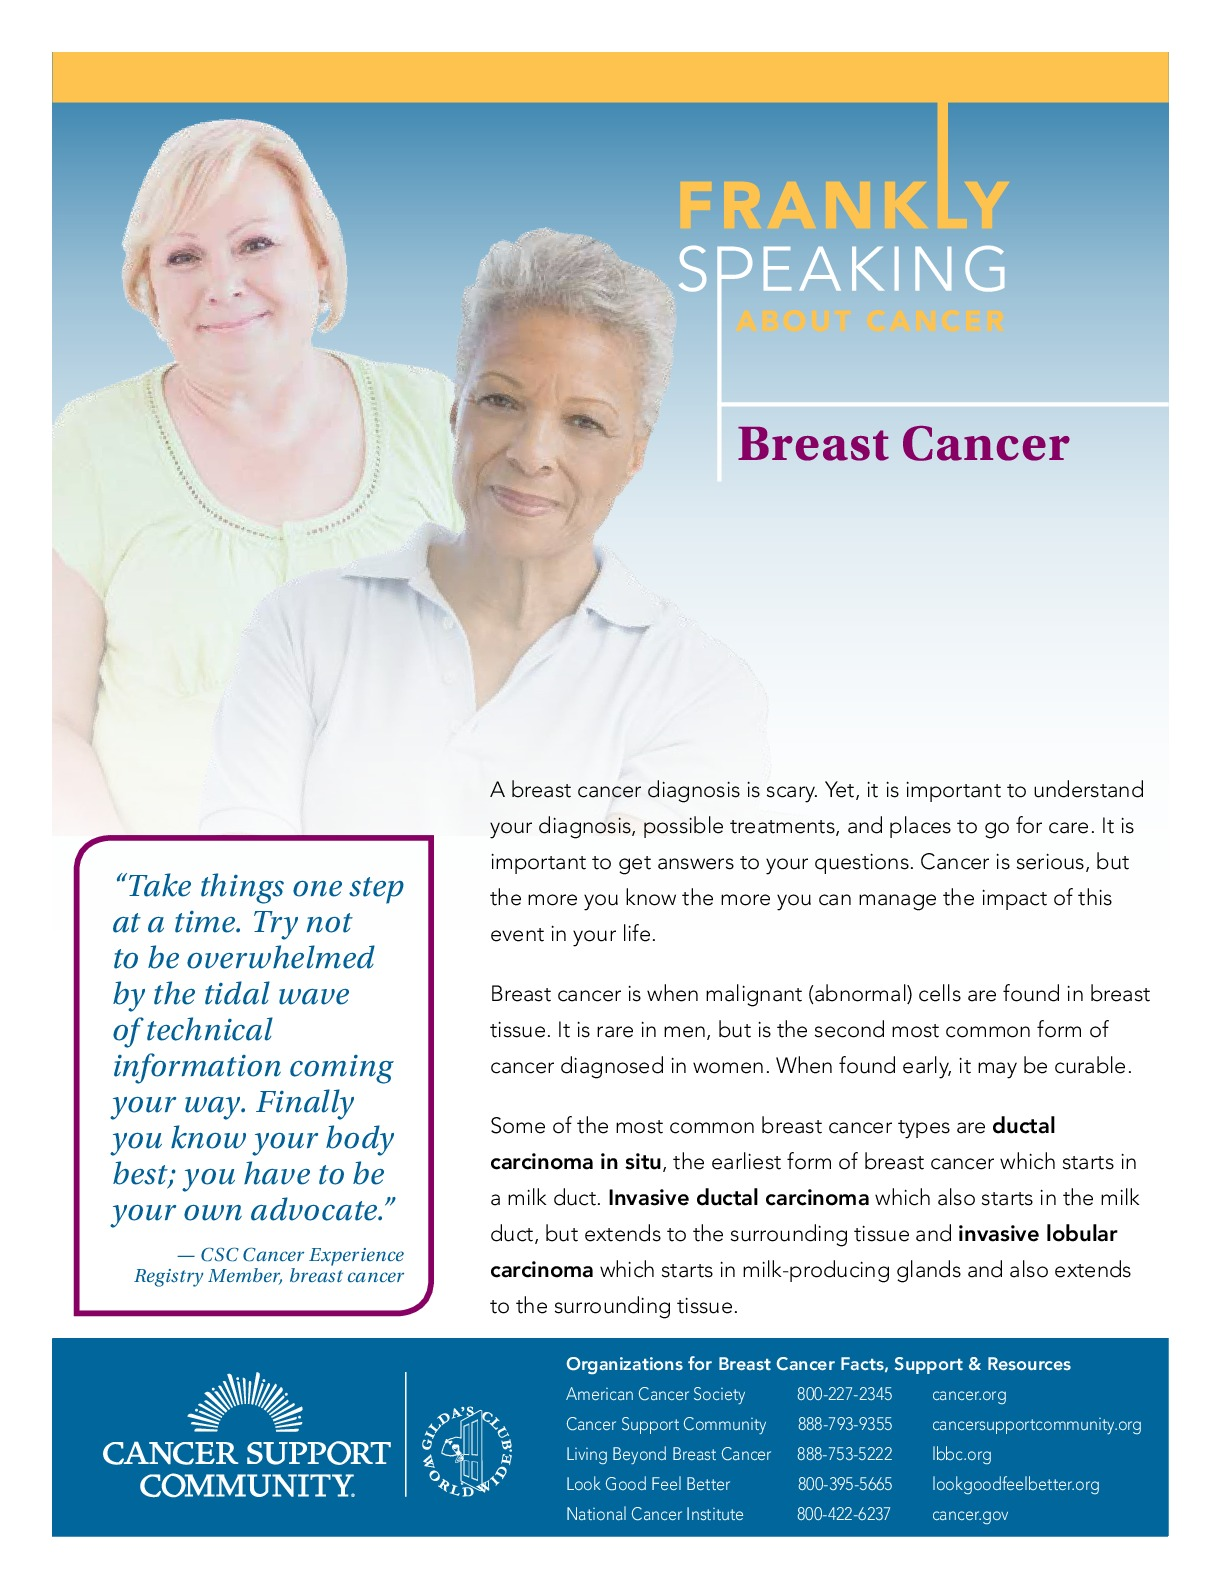 Frankly Speaking About Cancer: Breast Cancer